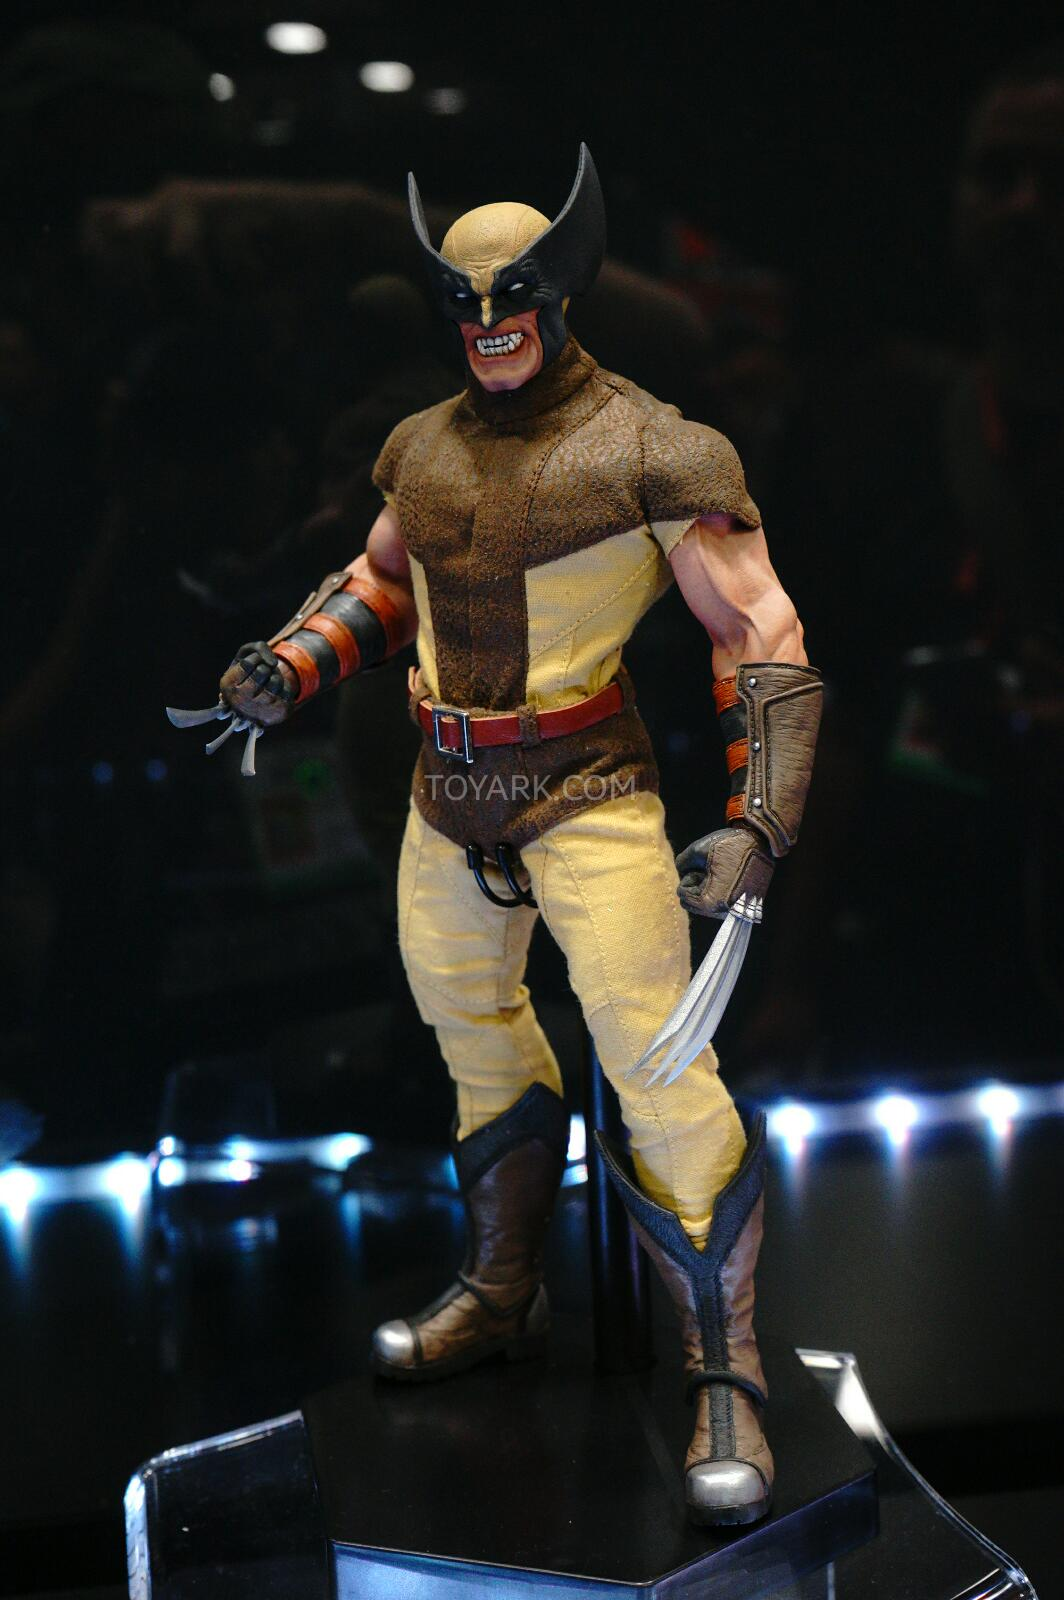 [Sideshow] Marvel Sixth Scale Collection - Wolverine DSC07549